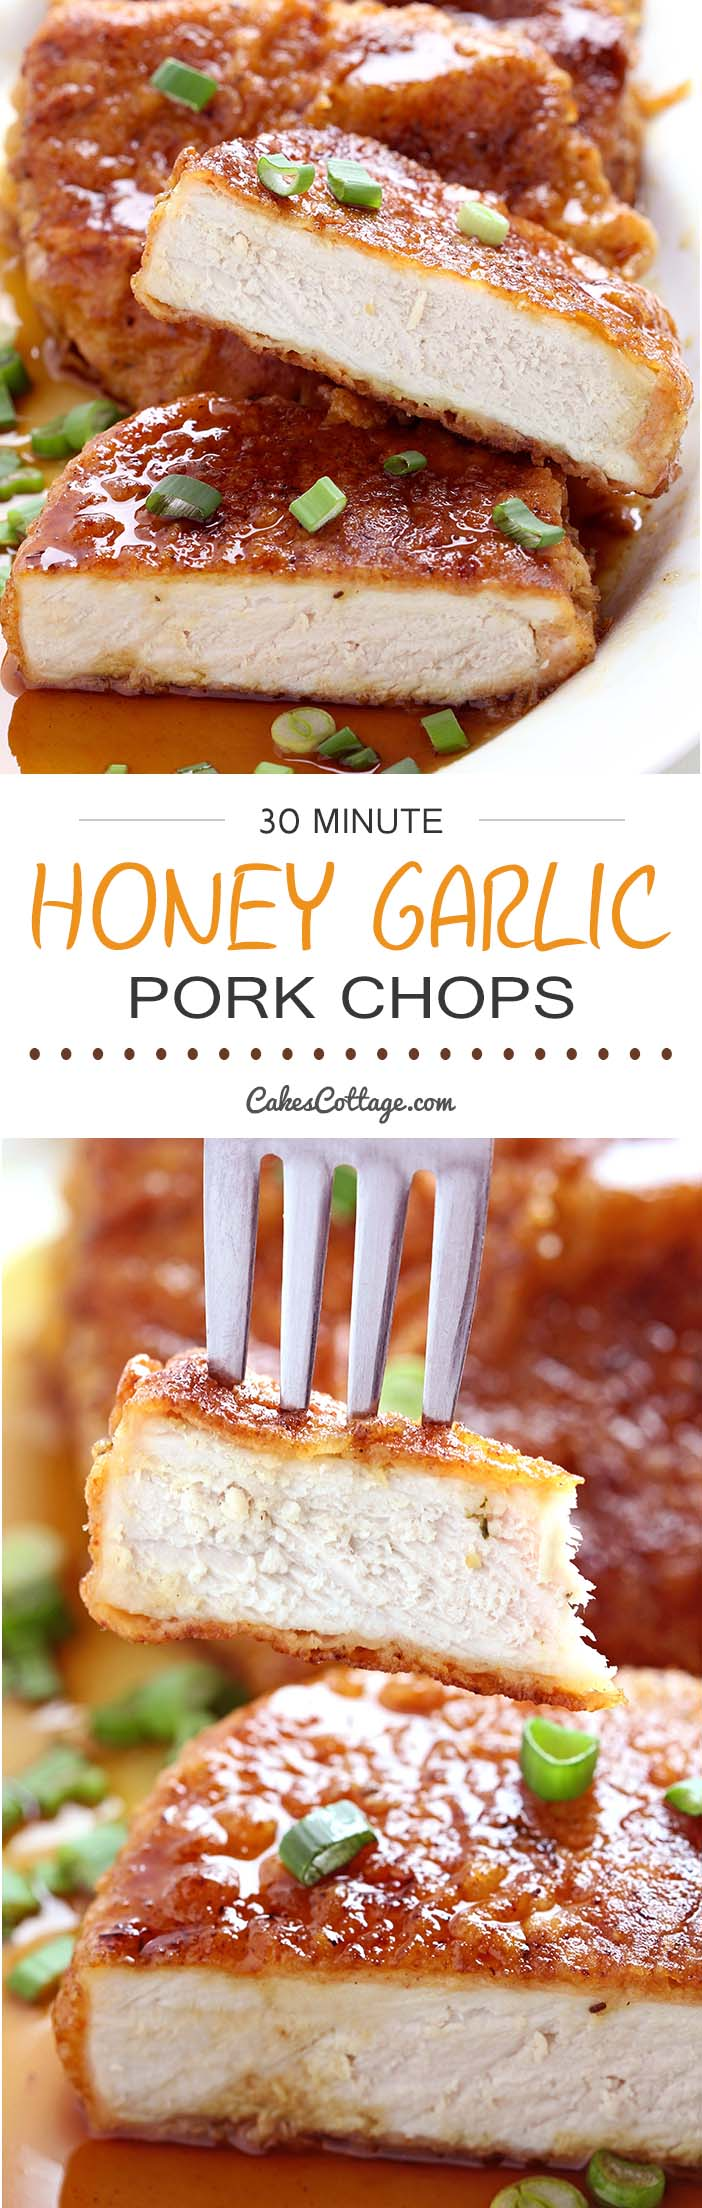 Double dipped and deliciously crunchy pork chops, coated in a sticky honey garlic